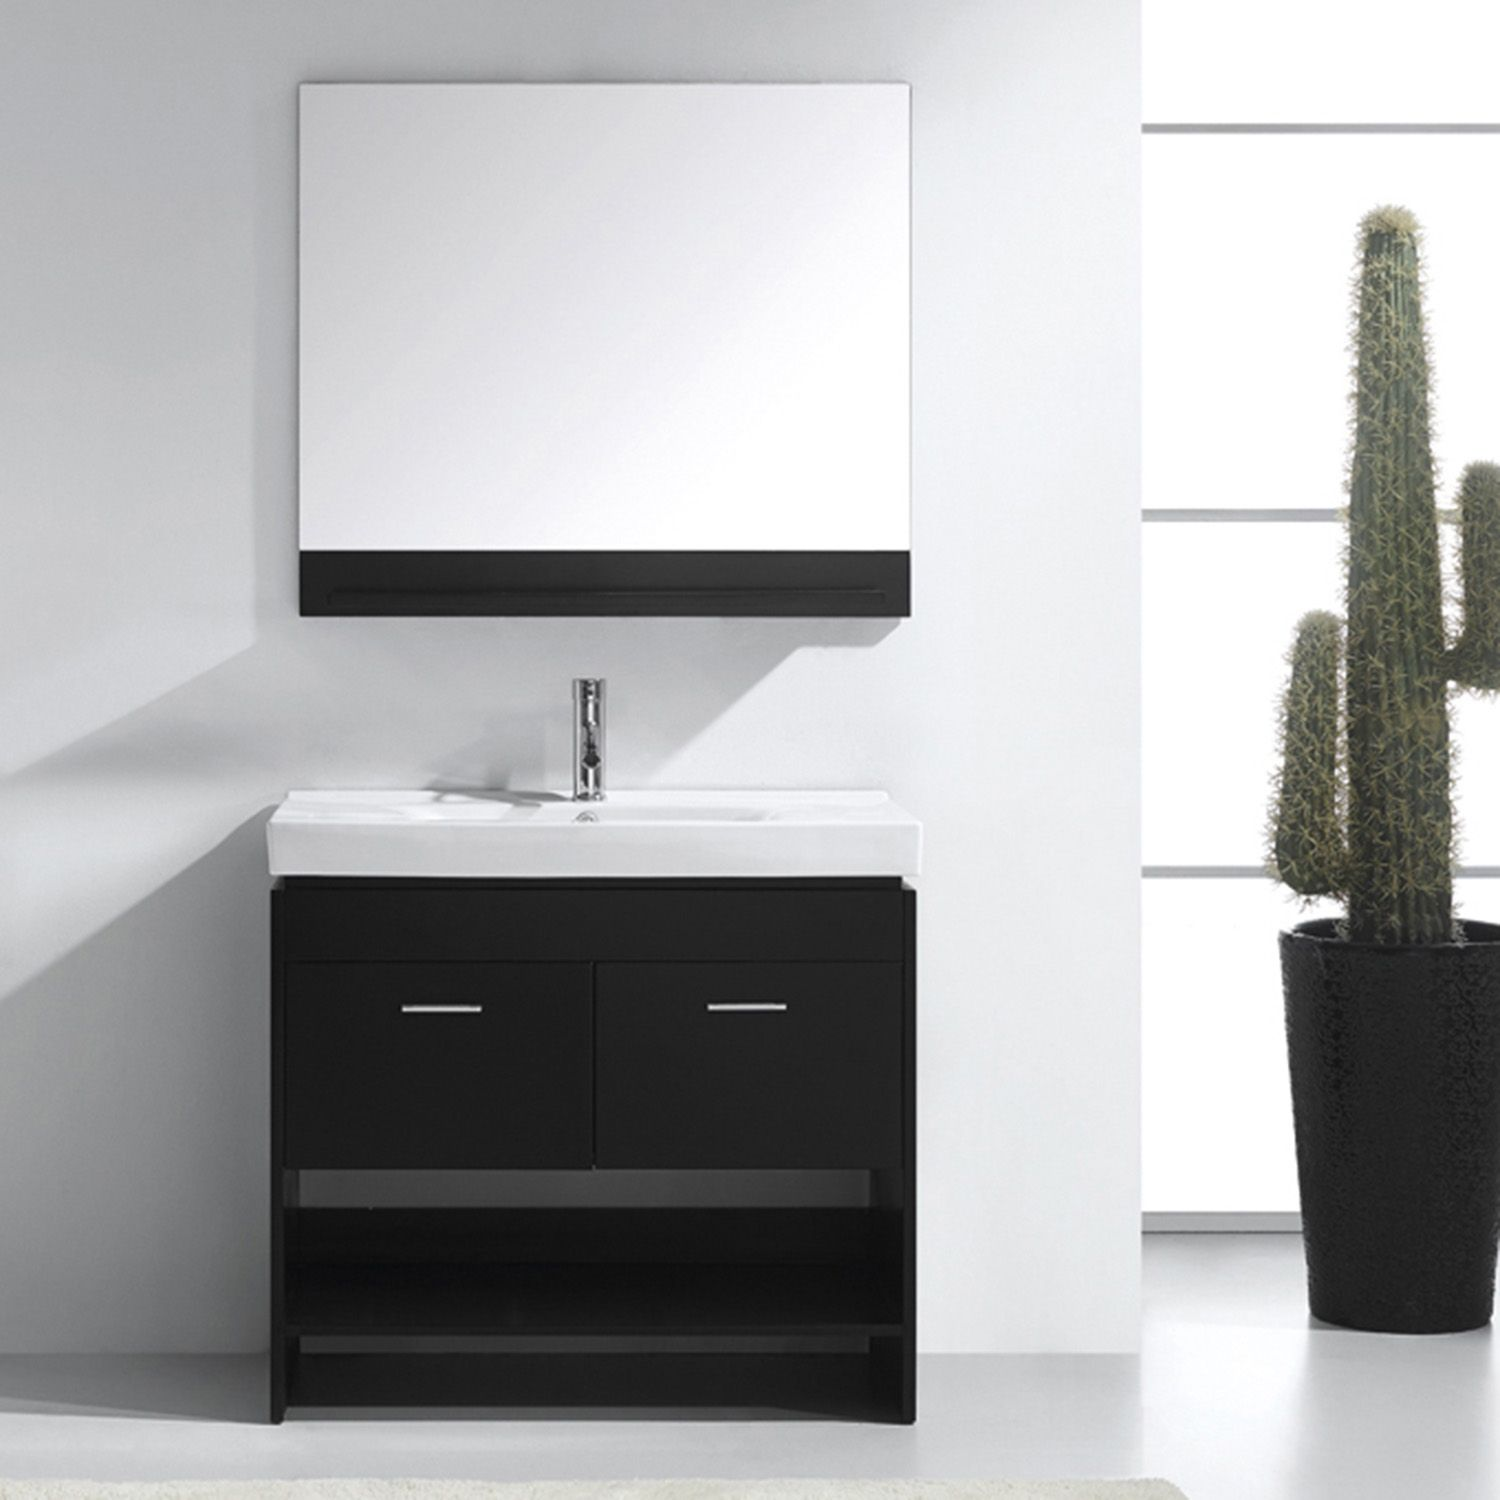 Virtu Usa Ms 555 C Es Gloria 36 Single Square Sink White Ceramic Top Vanity In Espresso With Polished Chrome Faucet And Mirror